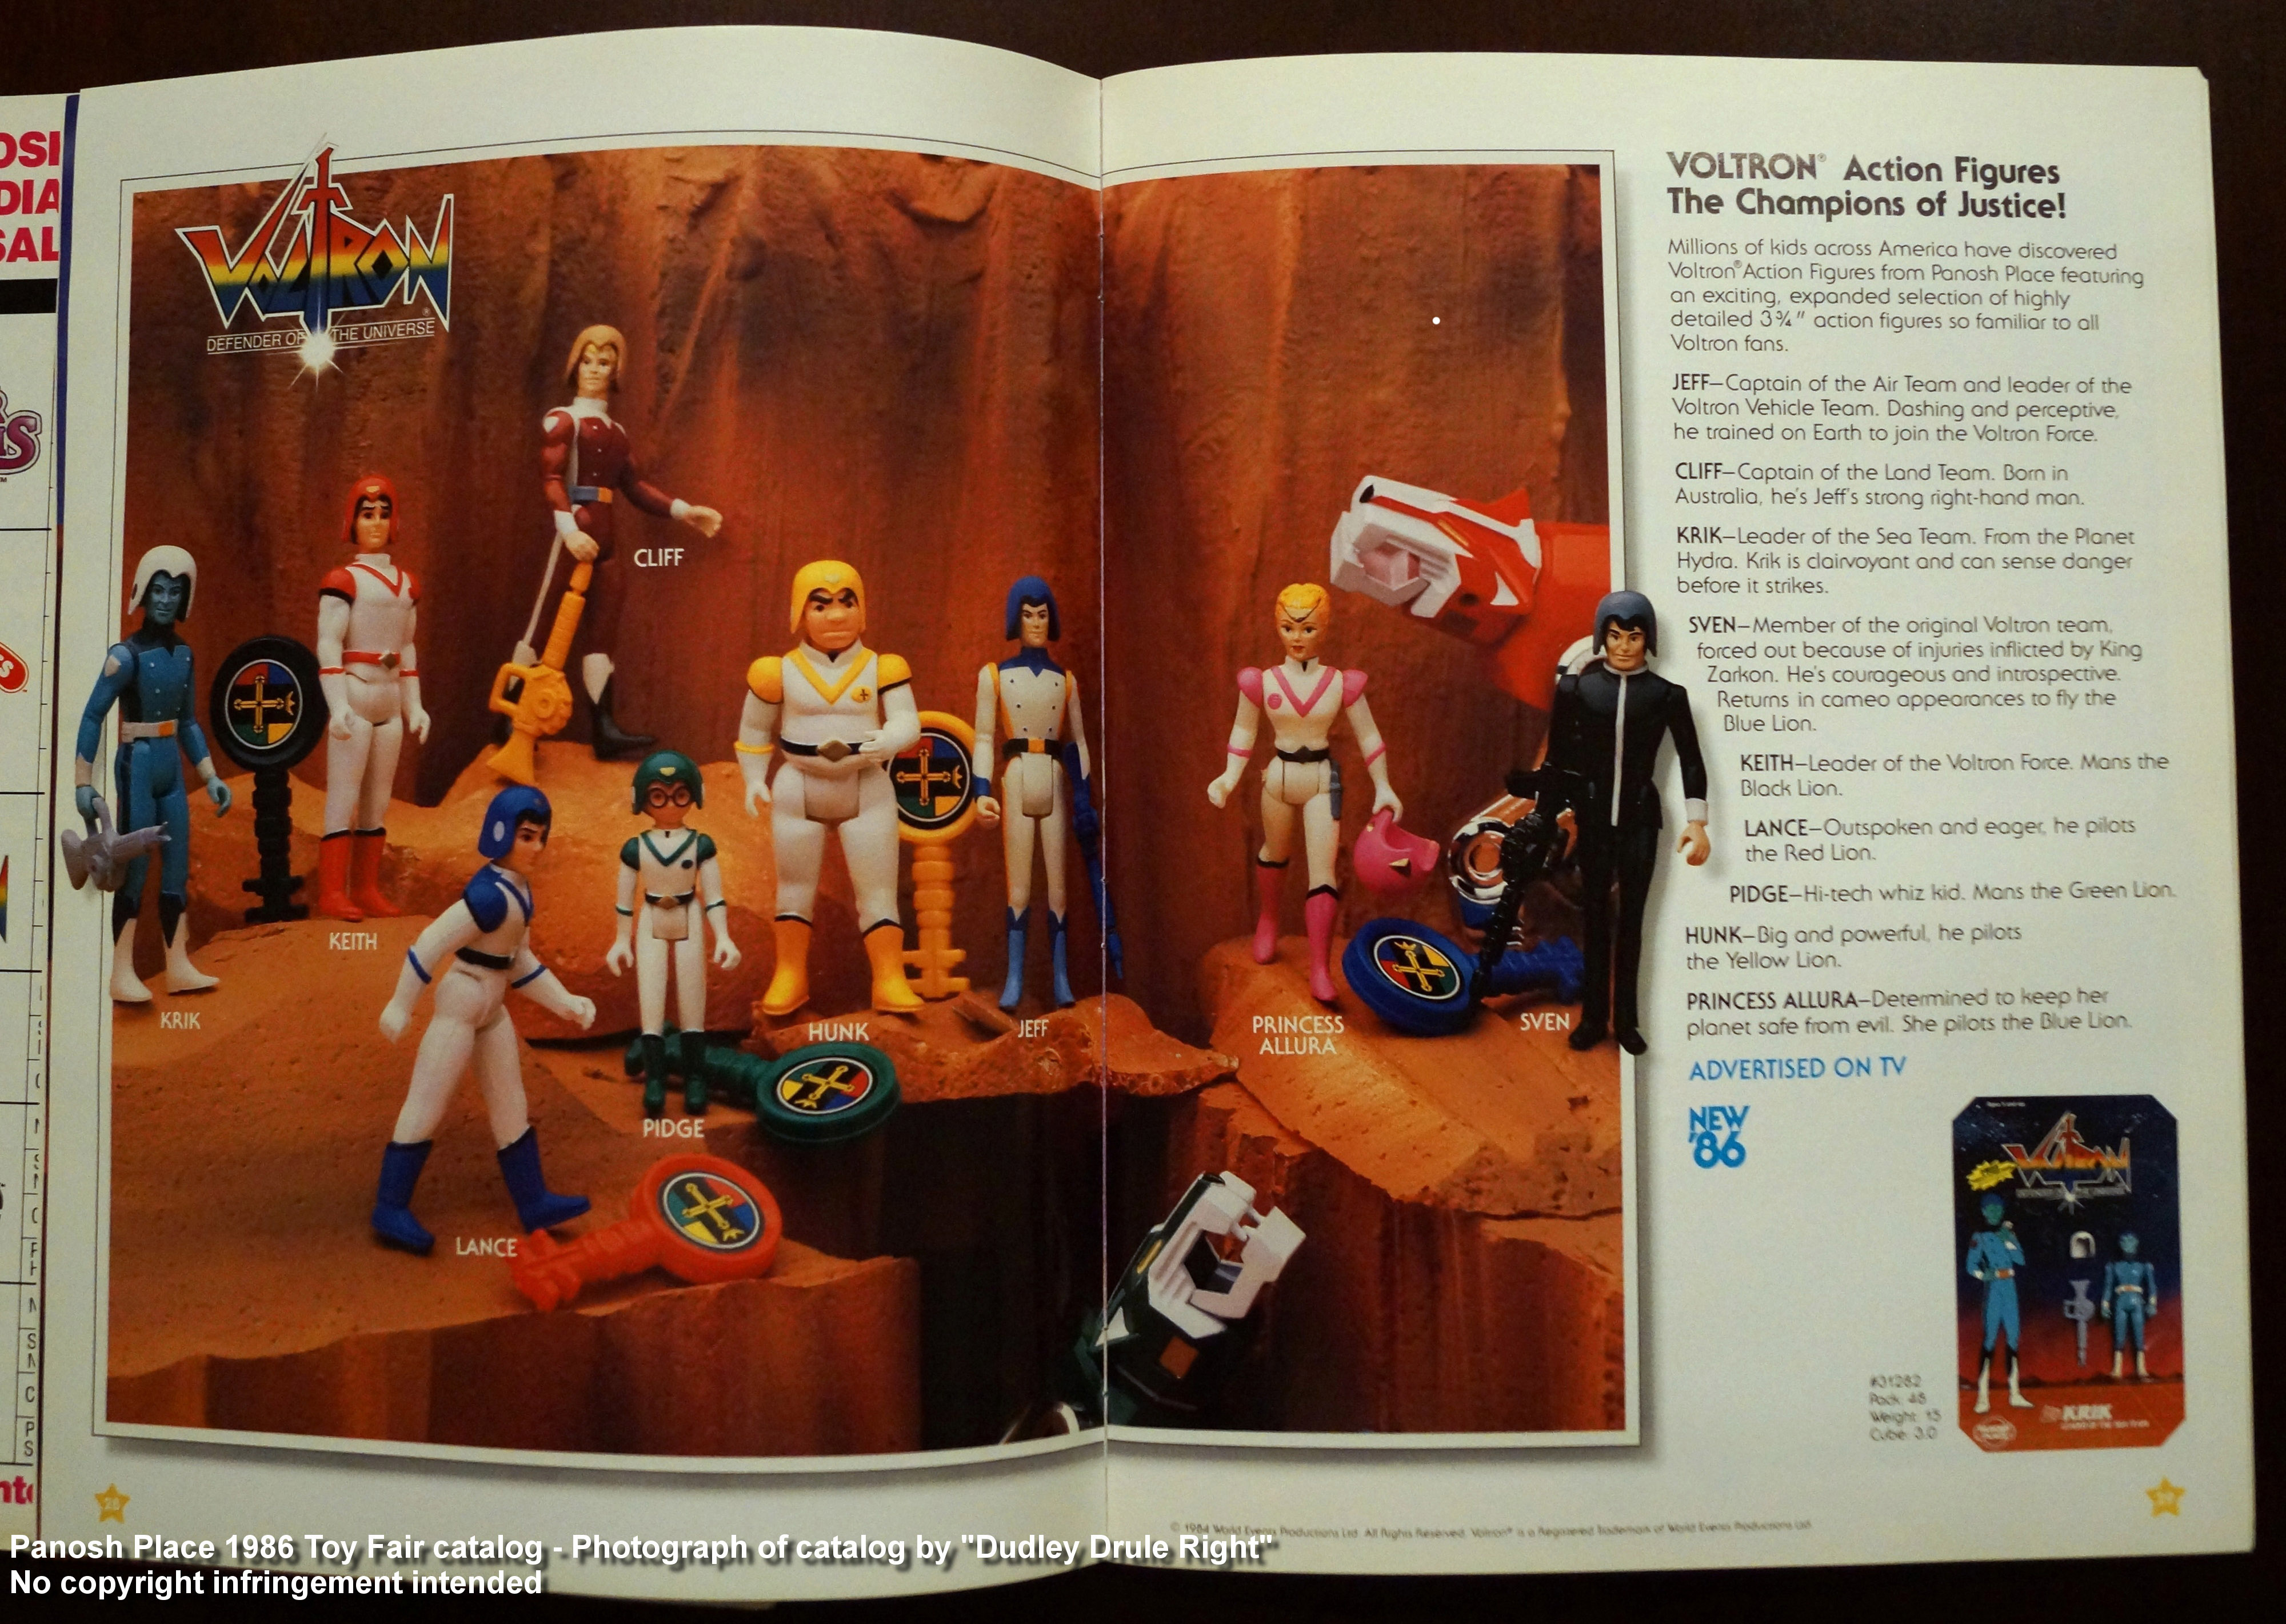 Panosh Place 1986 Toy Fair Catalog - Pages 28 and 29 (Voltron Champions of Justice action figures)